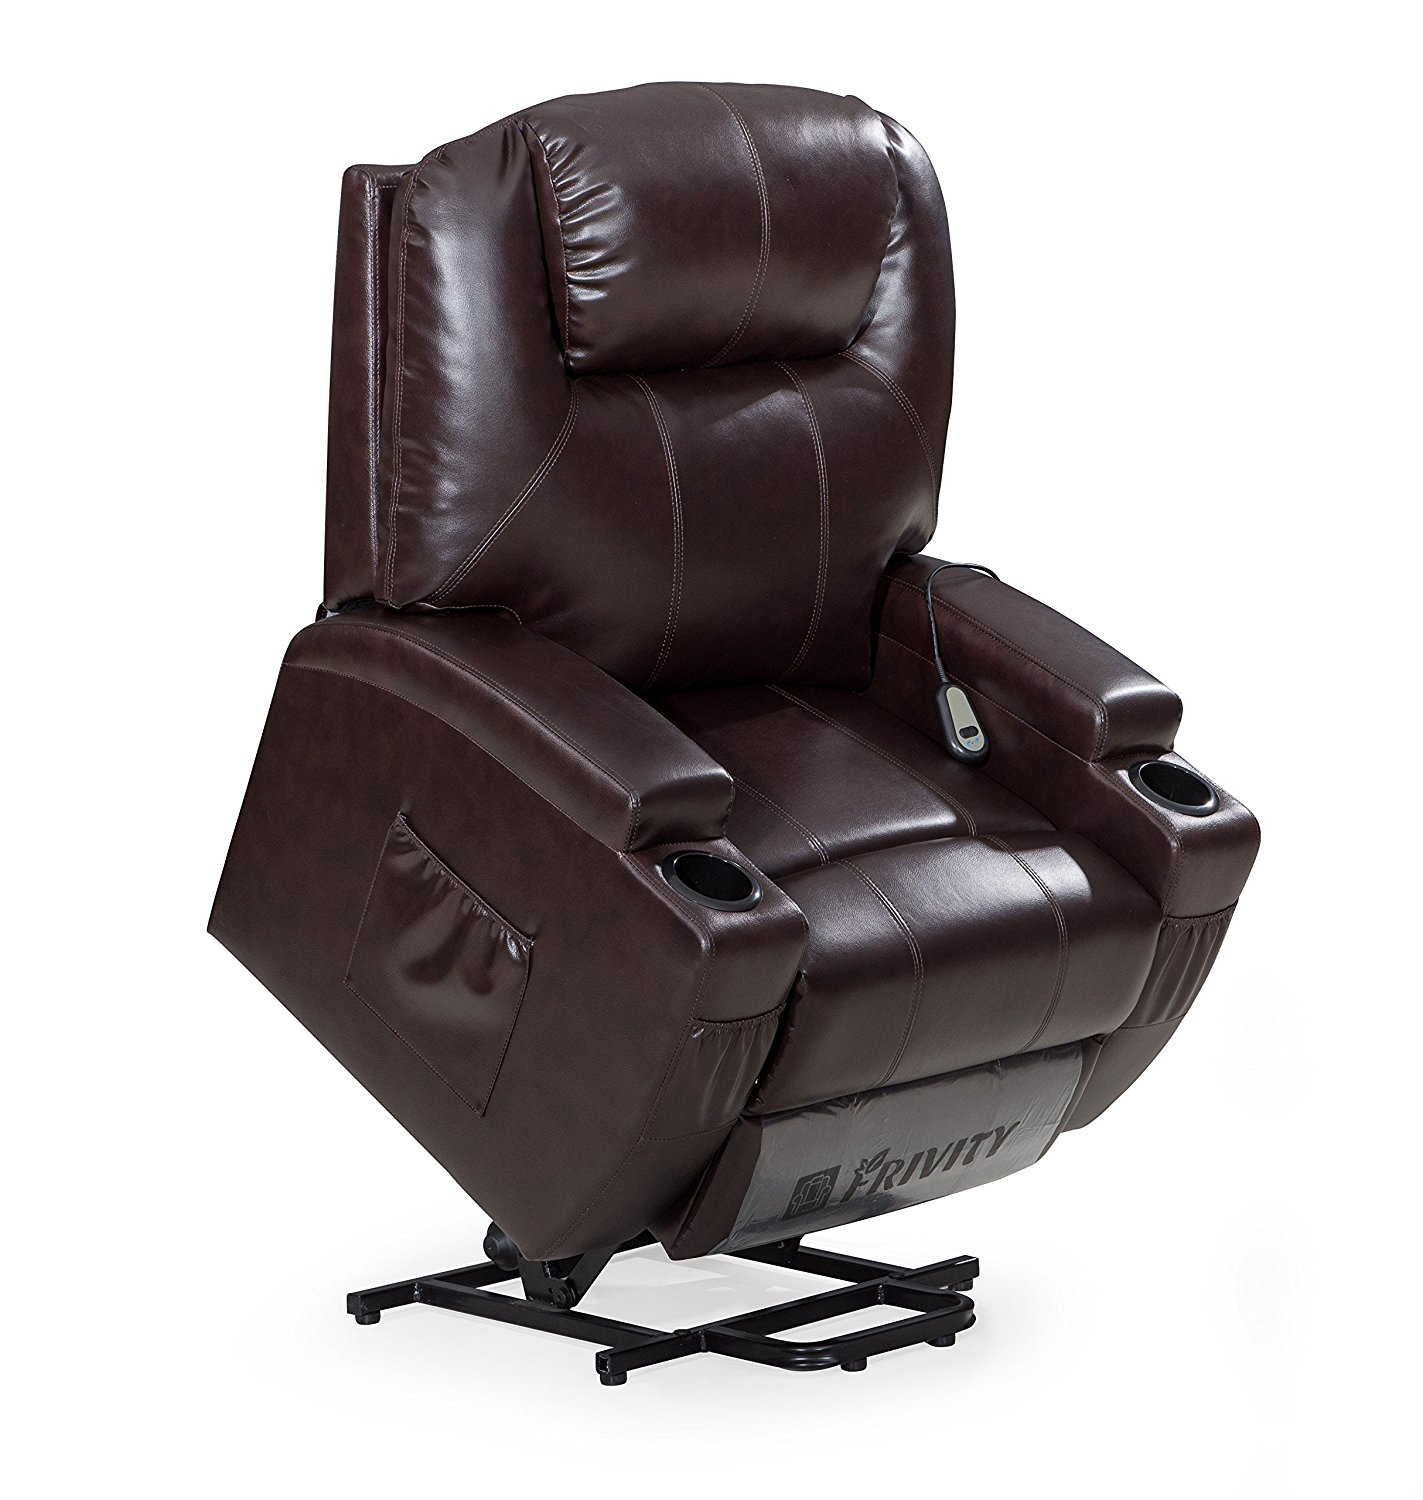 Frivity Power Lift Recliner Chair Classic and Traditional Bonded Leather 1 Seat Sofa Lift Reclining Armchair with Padded Arms and Back (Brown-Lift)